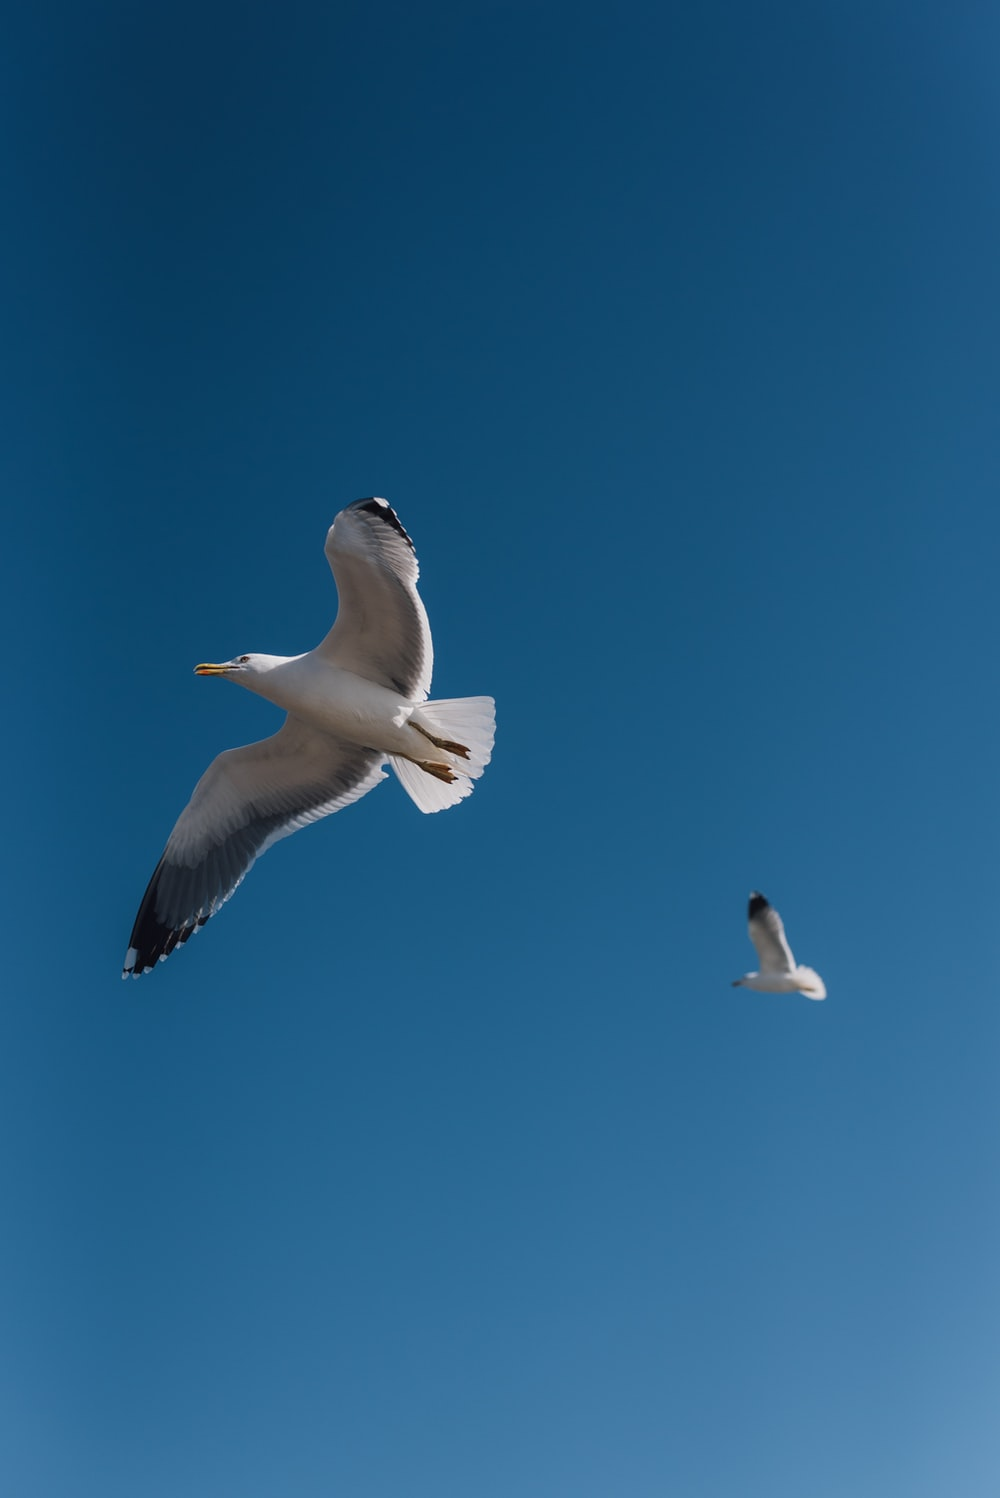 two white seagull flying in air during daytim